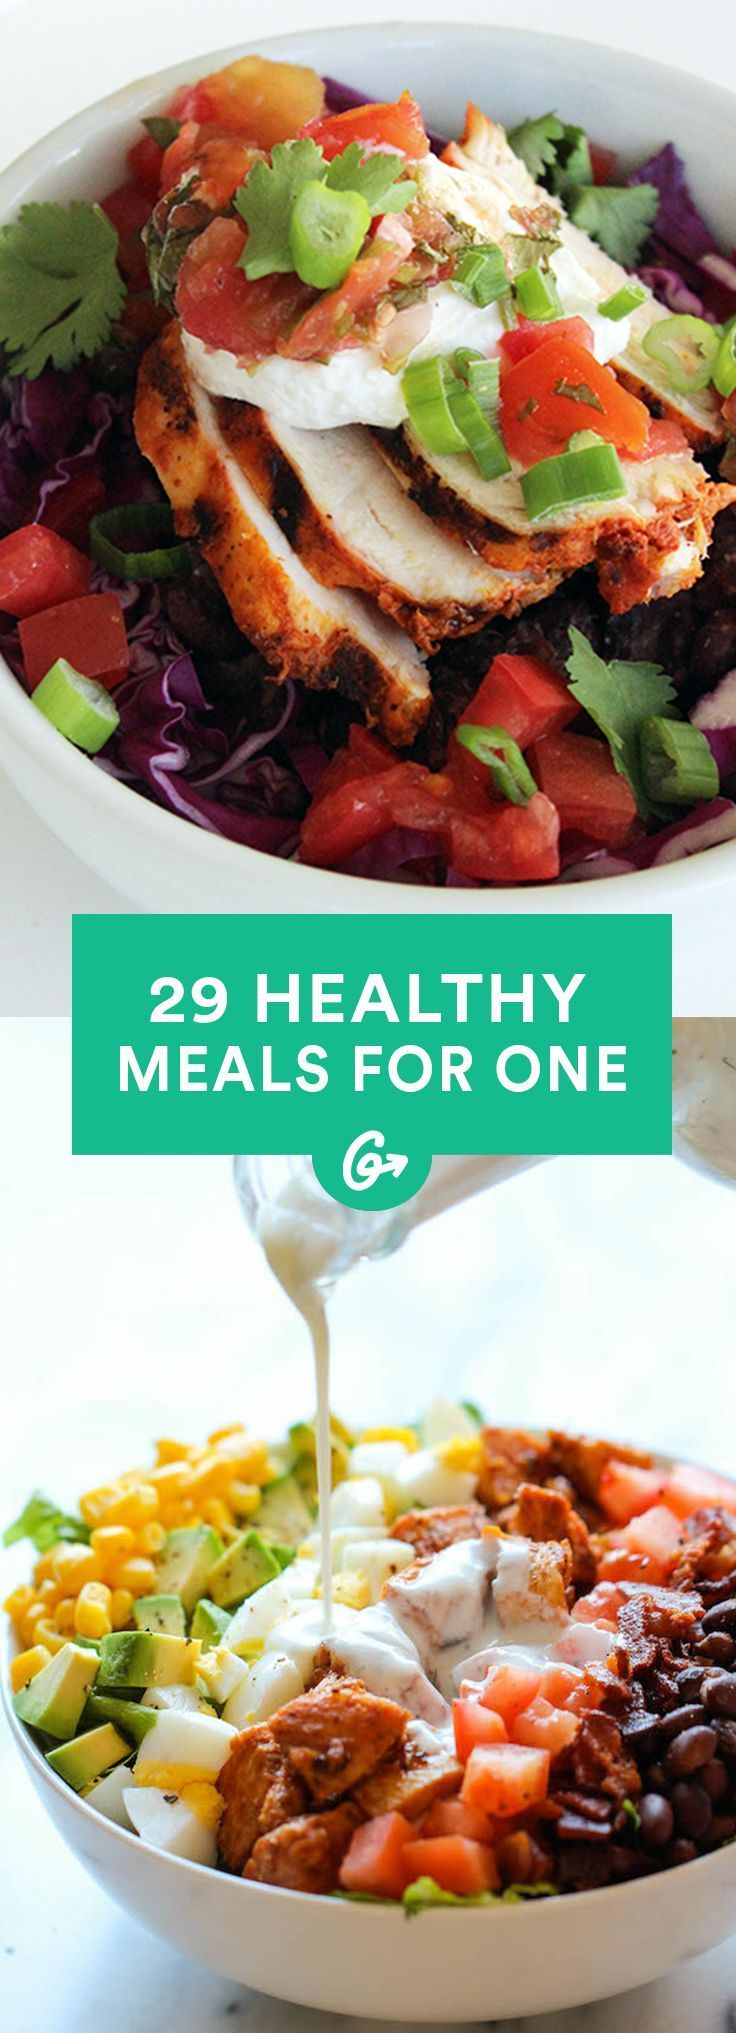 for One: 25 Insanely Easy, Healthy Meals You Can Make in Minutes